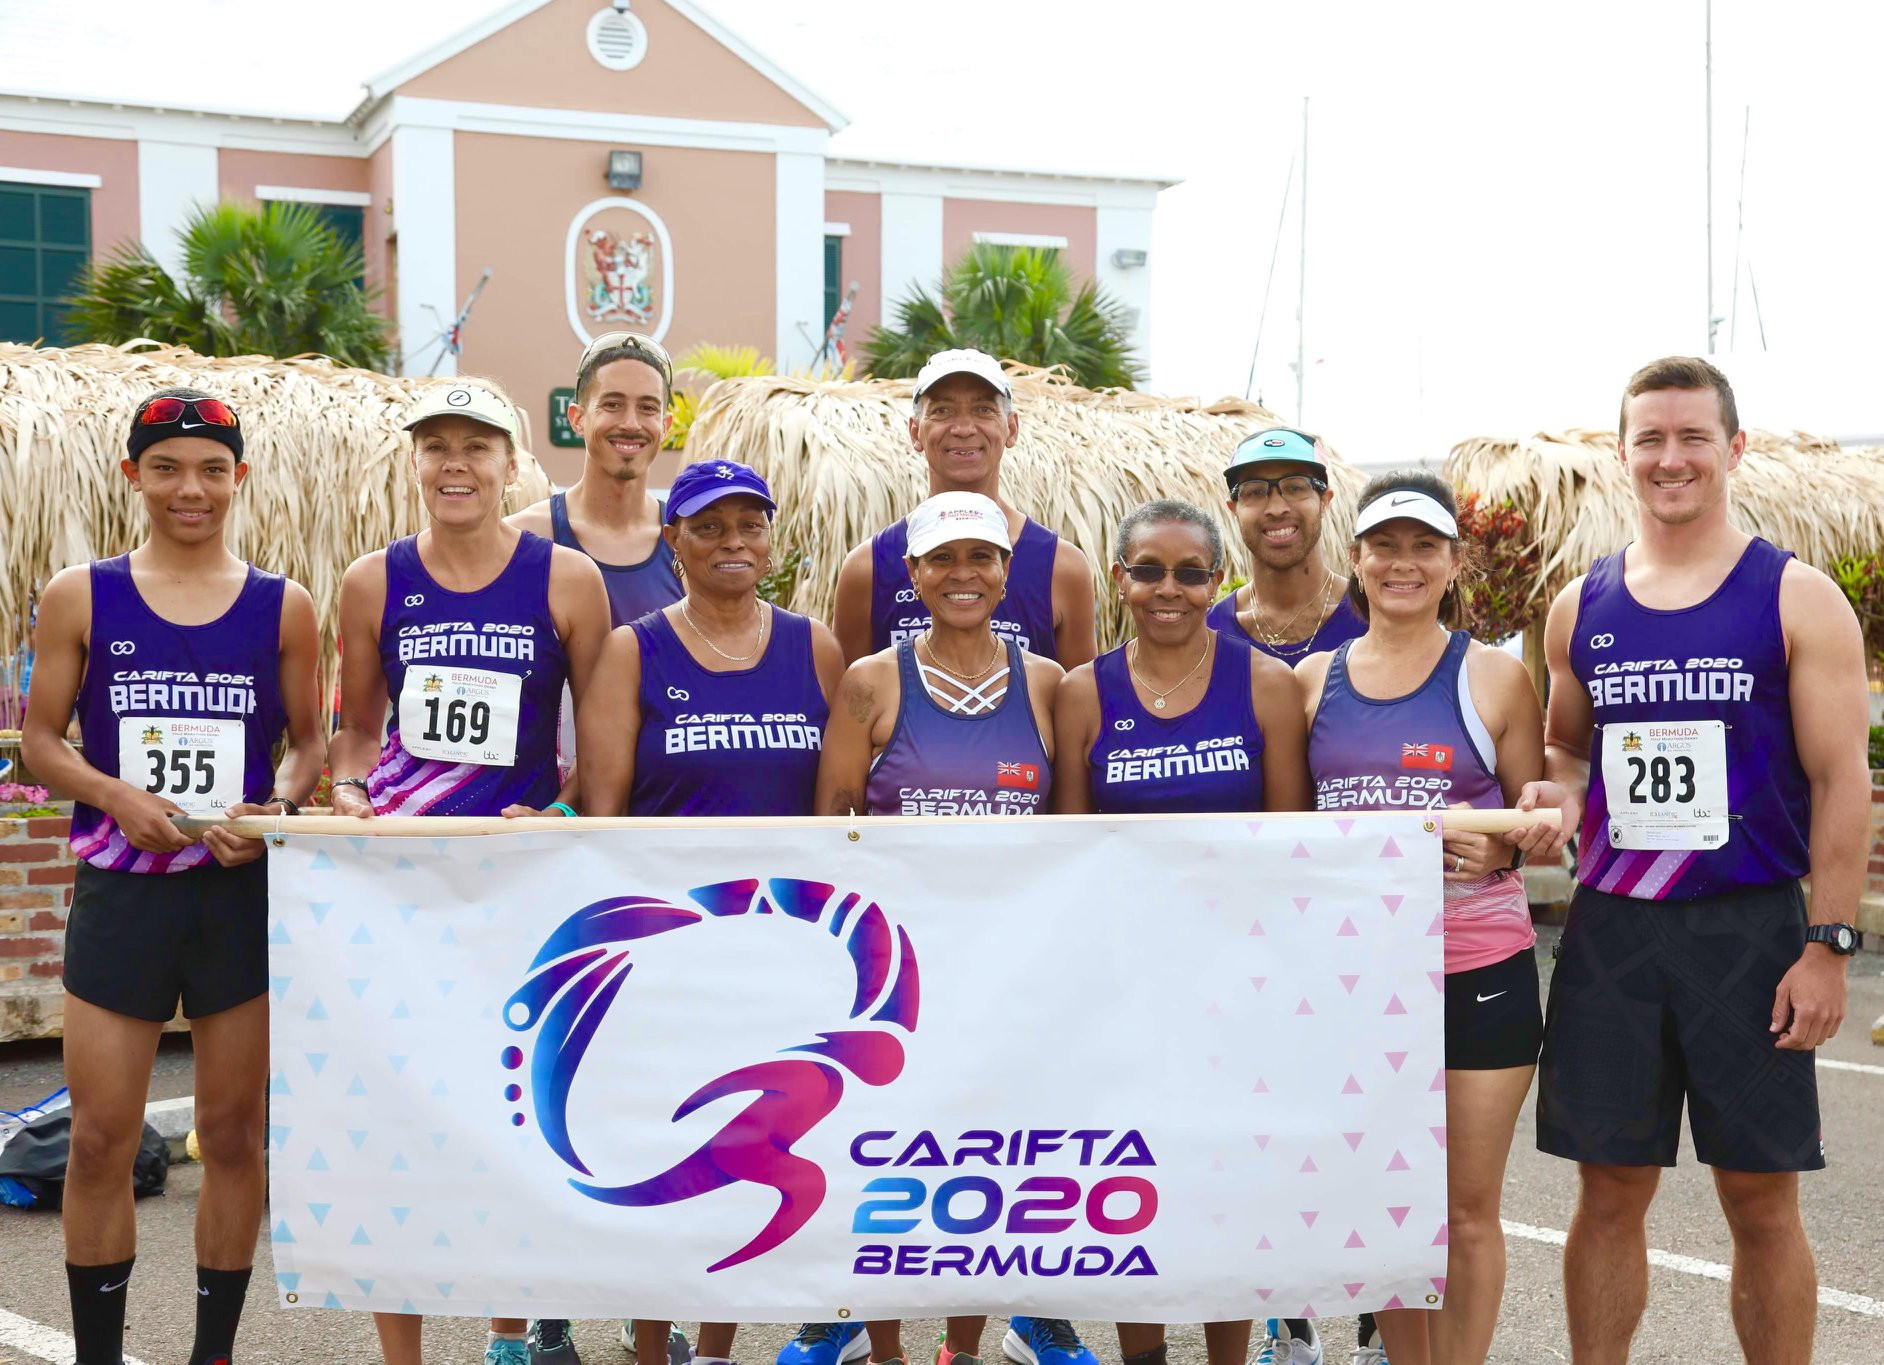 Bermuda had been scheduled to stage the Games in 2020 ©CARIFTA 2020/Facebook